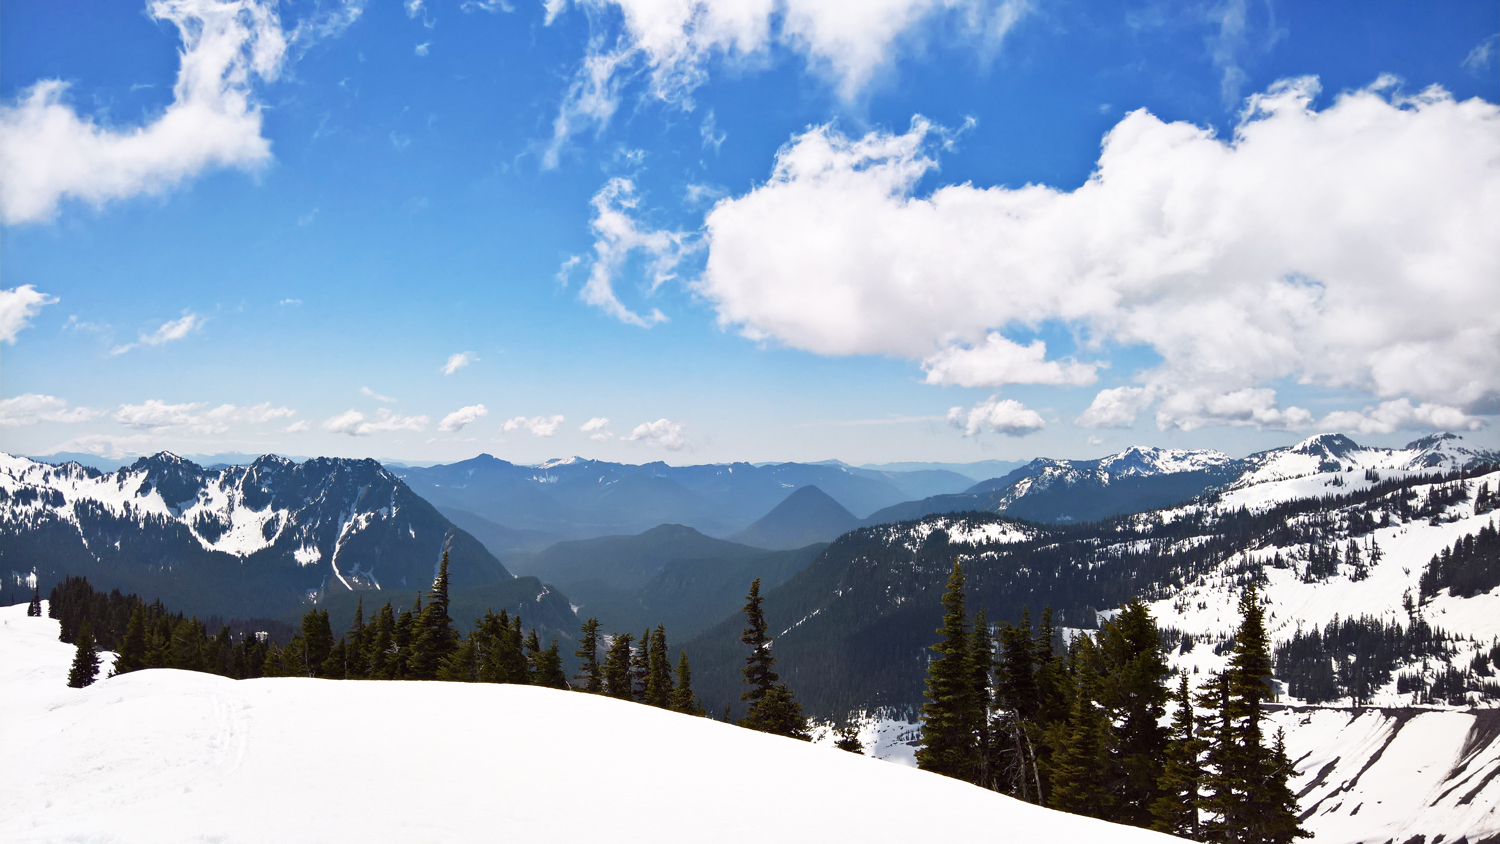 Mount Rainier in May: A Stunning Sight to See, Snowshoe, and Ski | OMventure.com